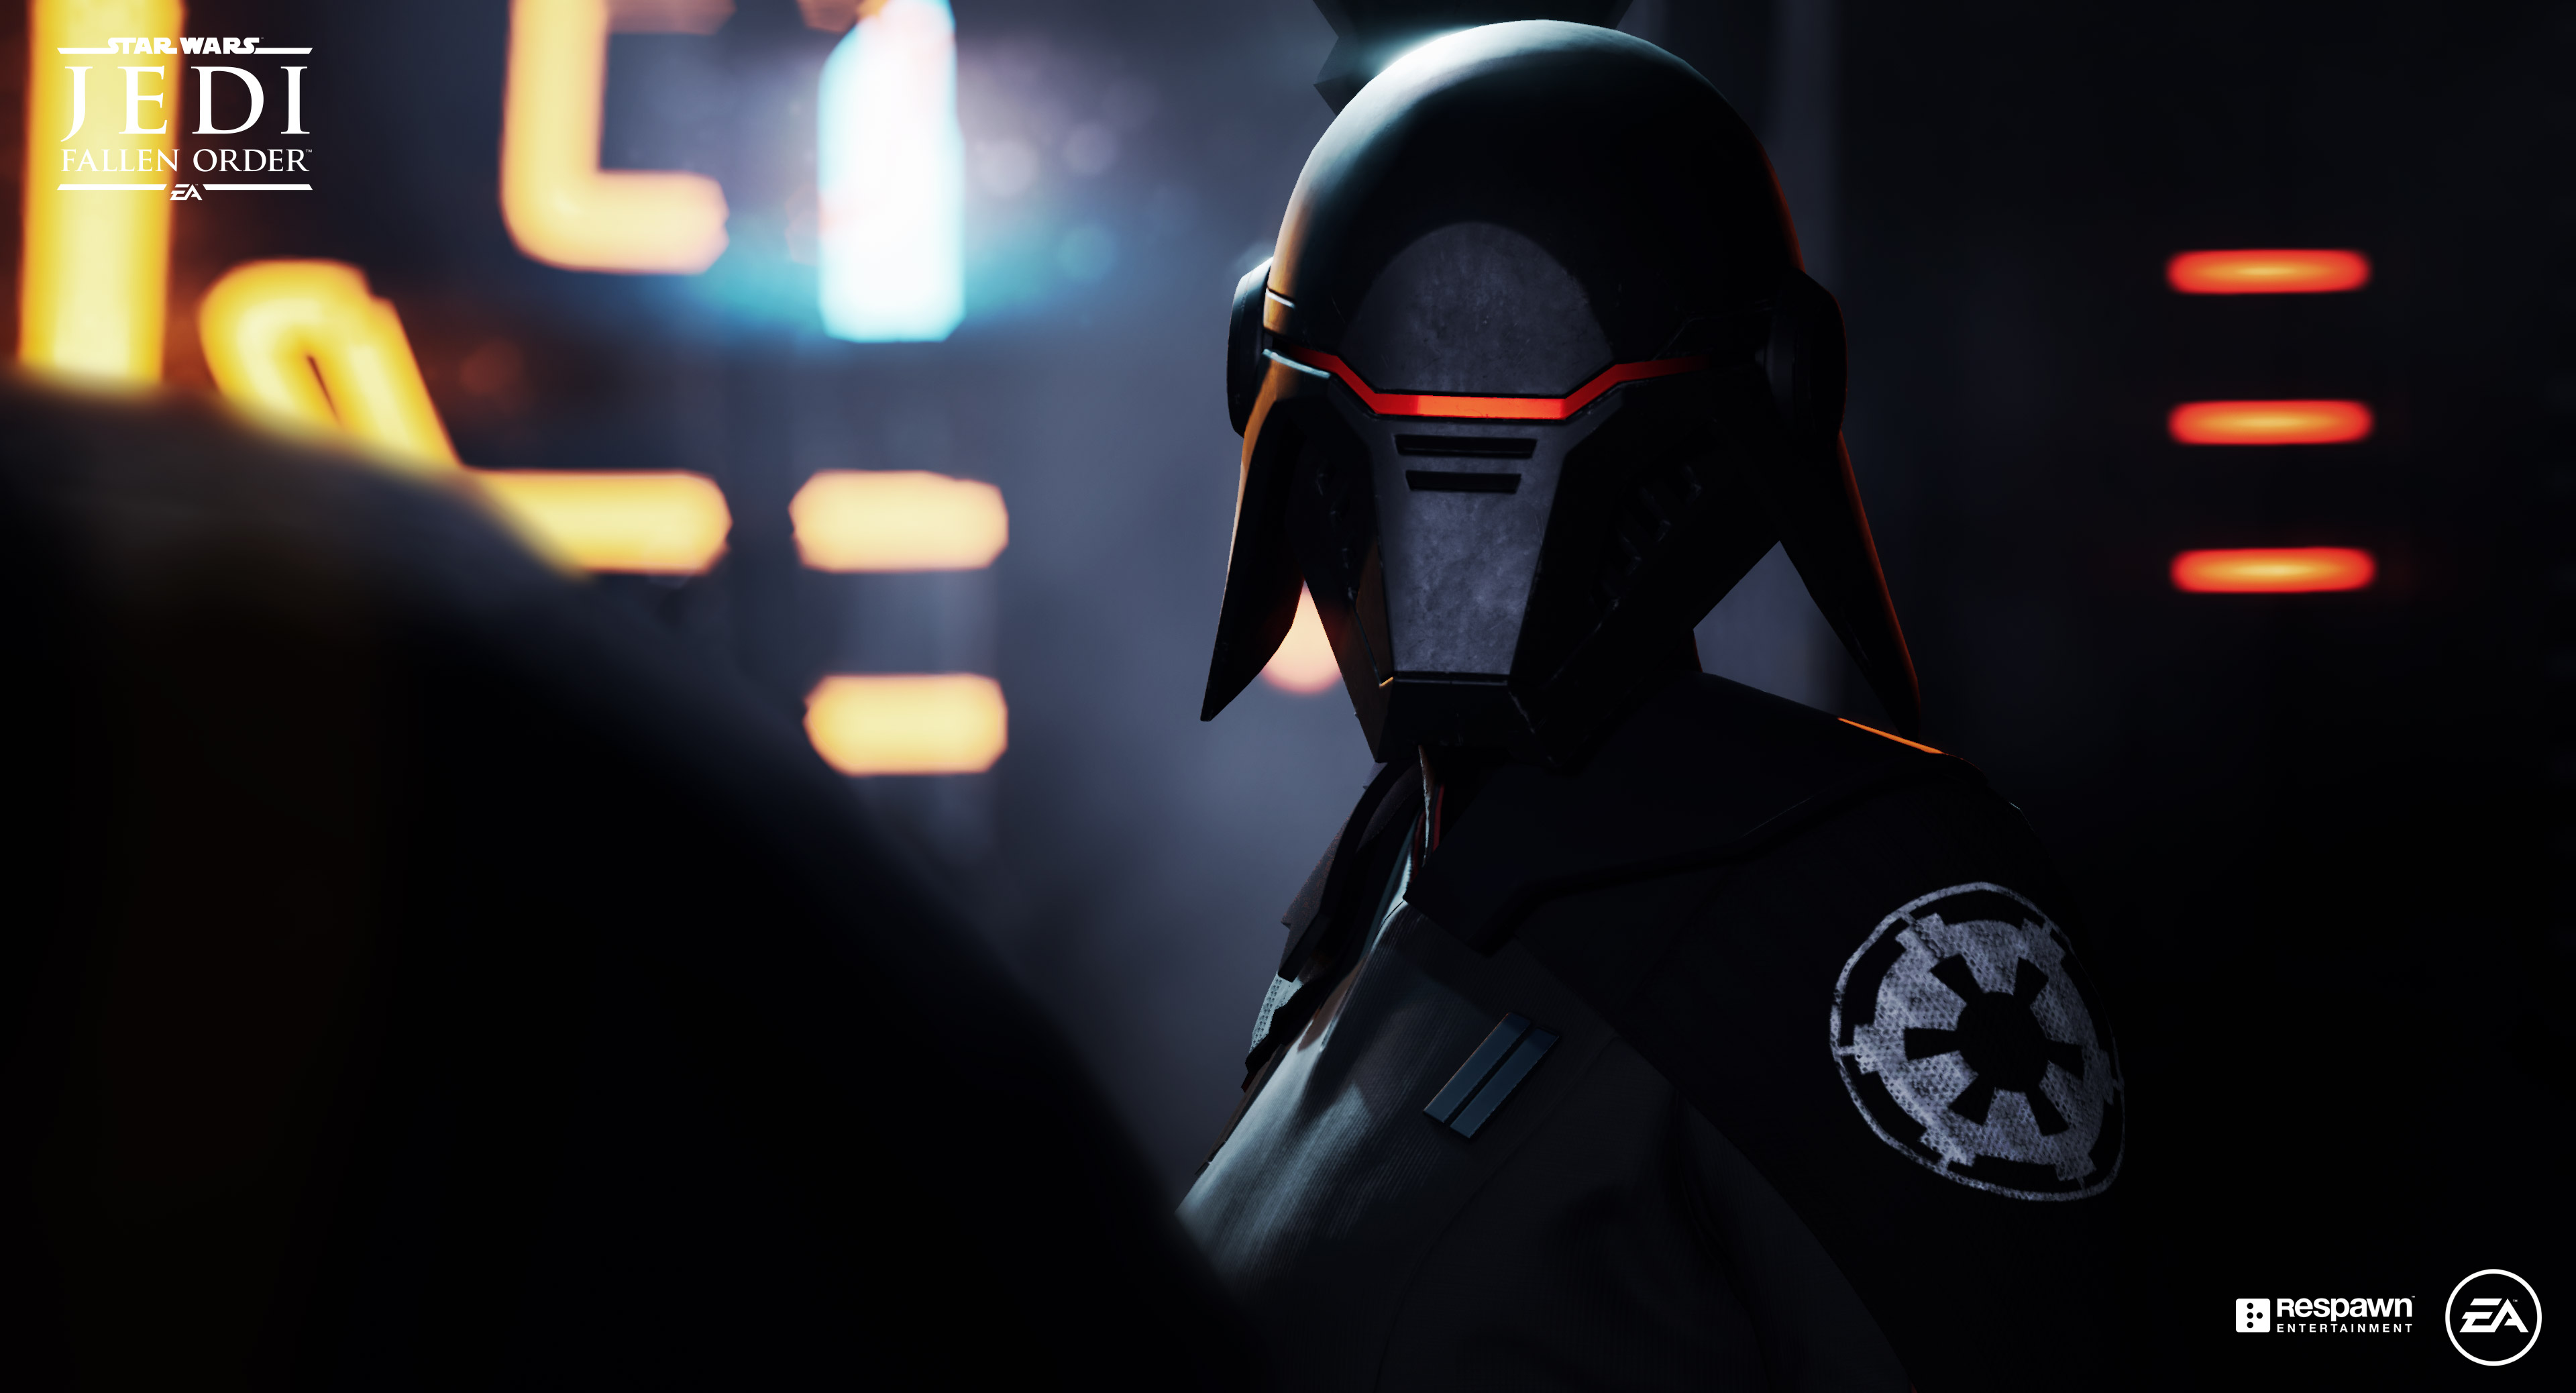 Respawn Entertainment (Apex Legends) lève le voile sur Star Wars Jedi: Fallen Order - Pop culture